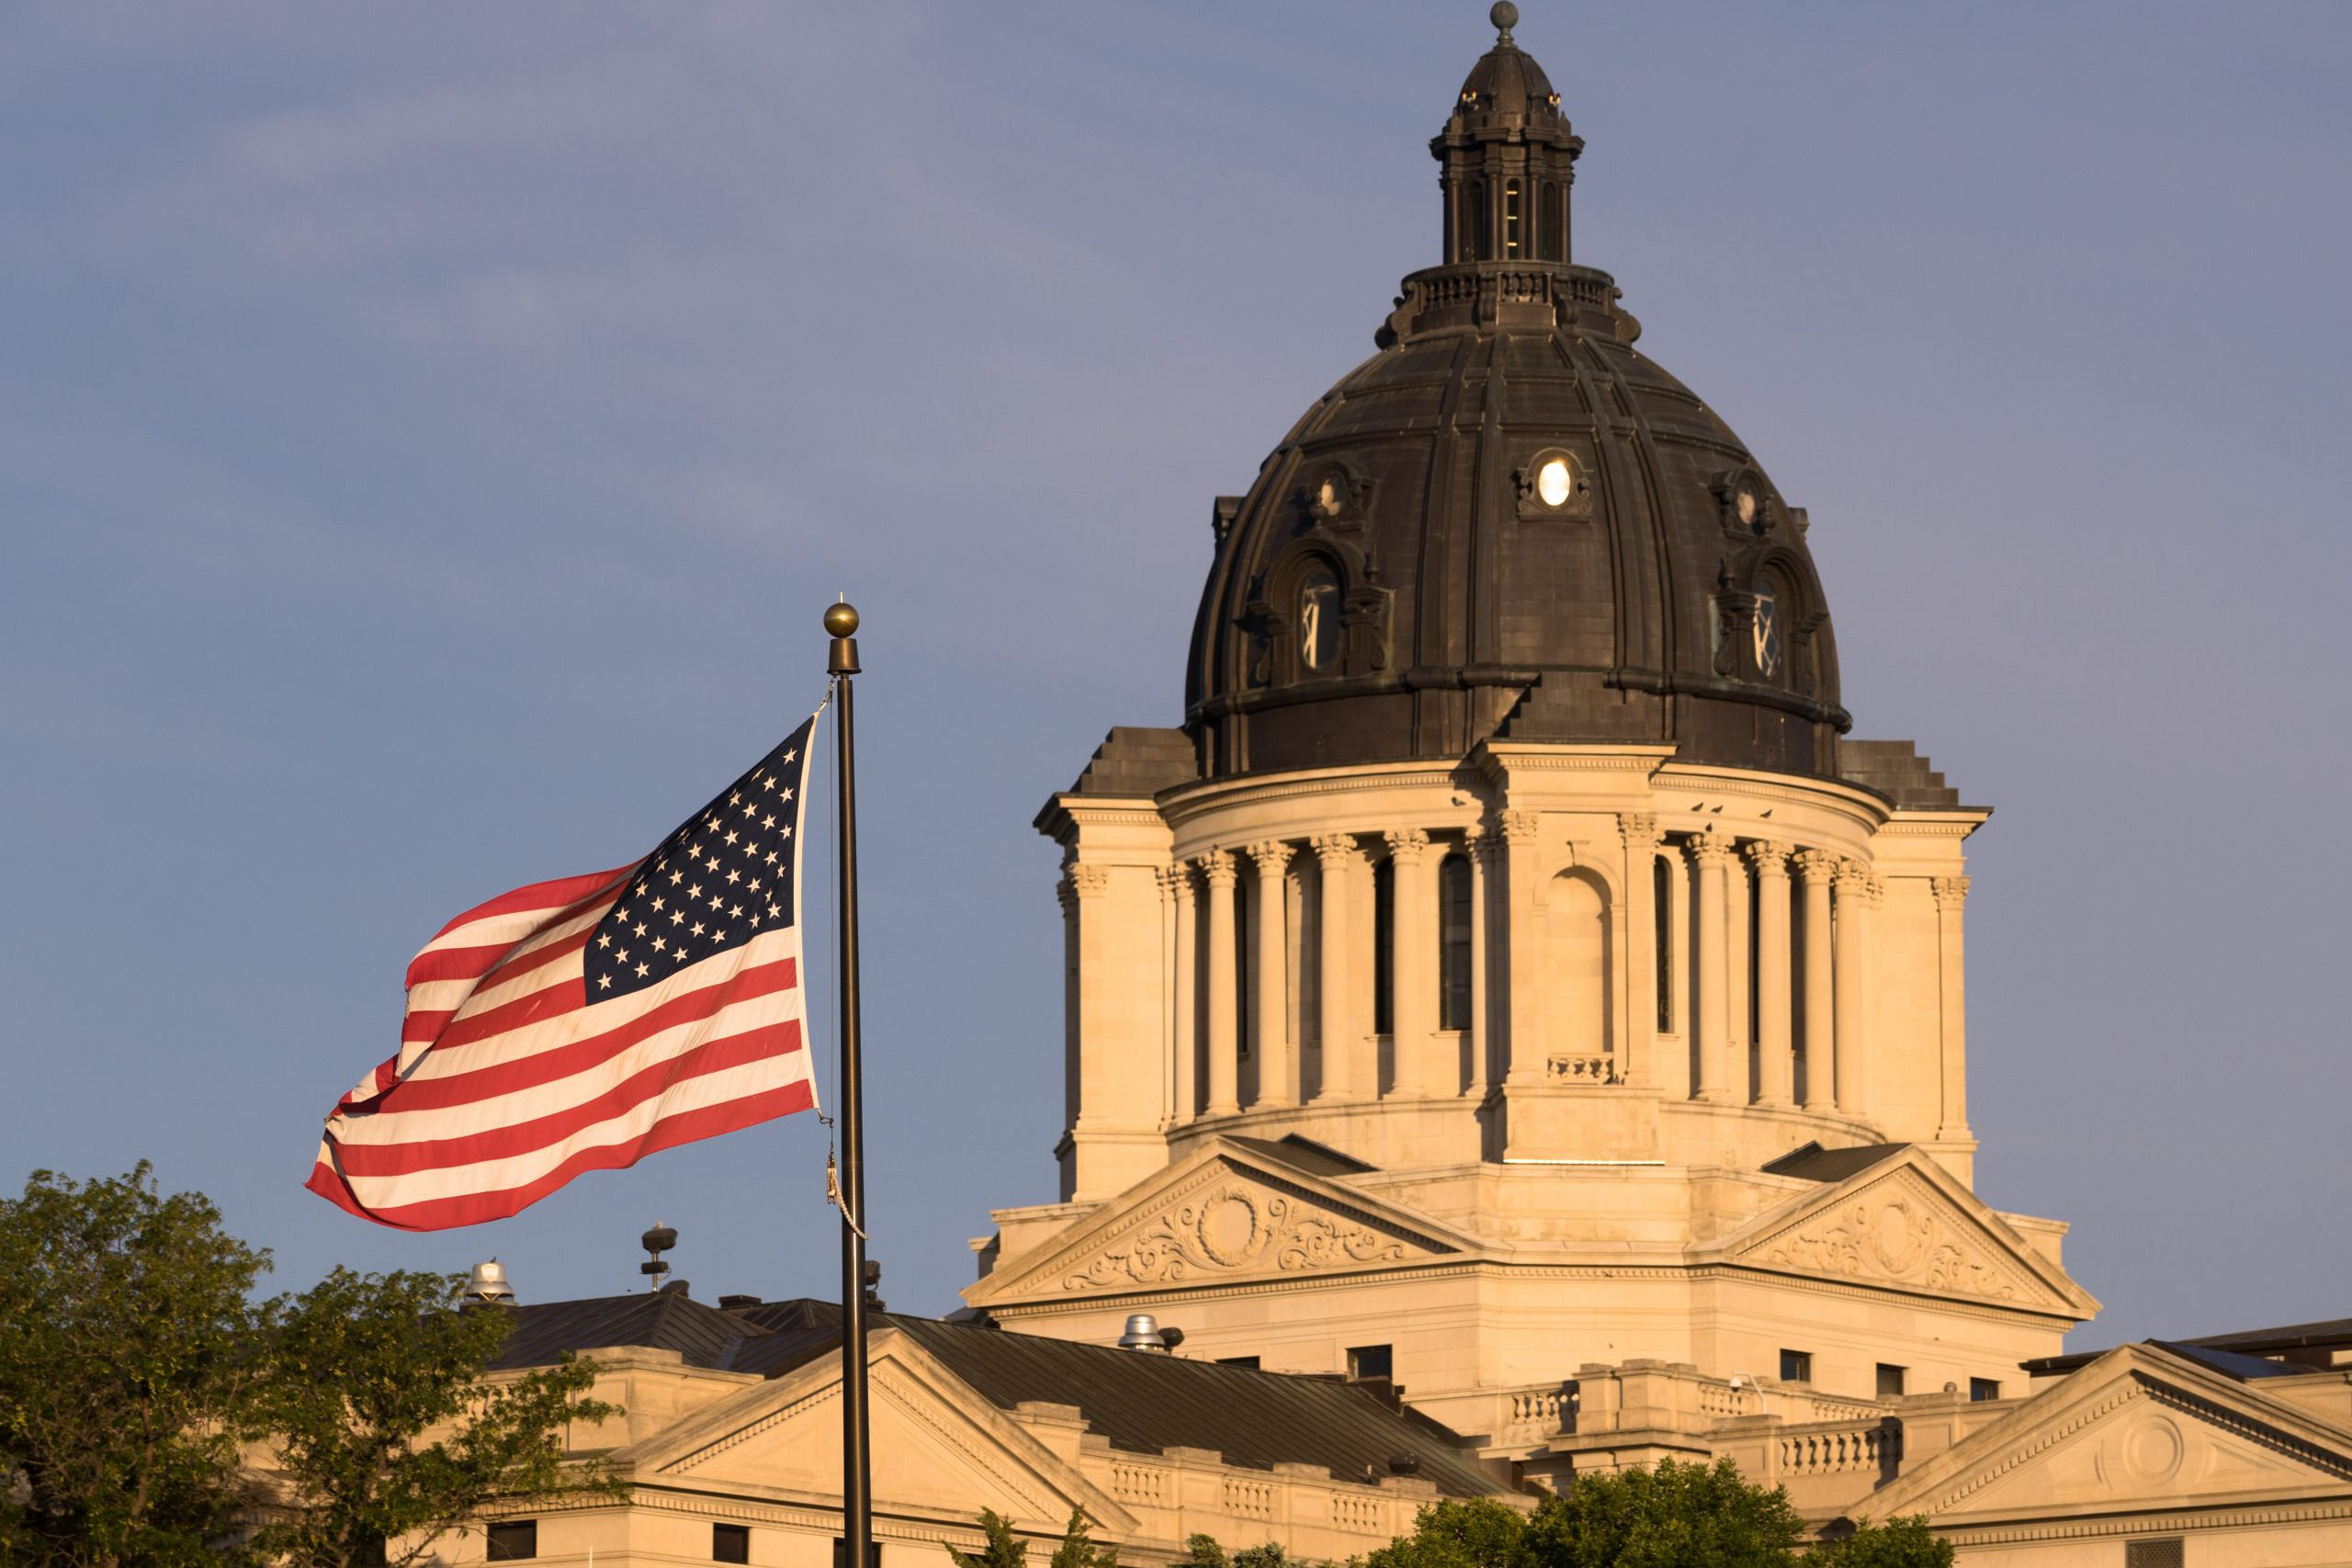 The American Flag waves in front of the capitol dome in Pierre, SD